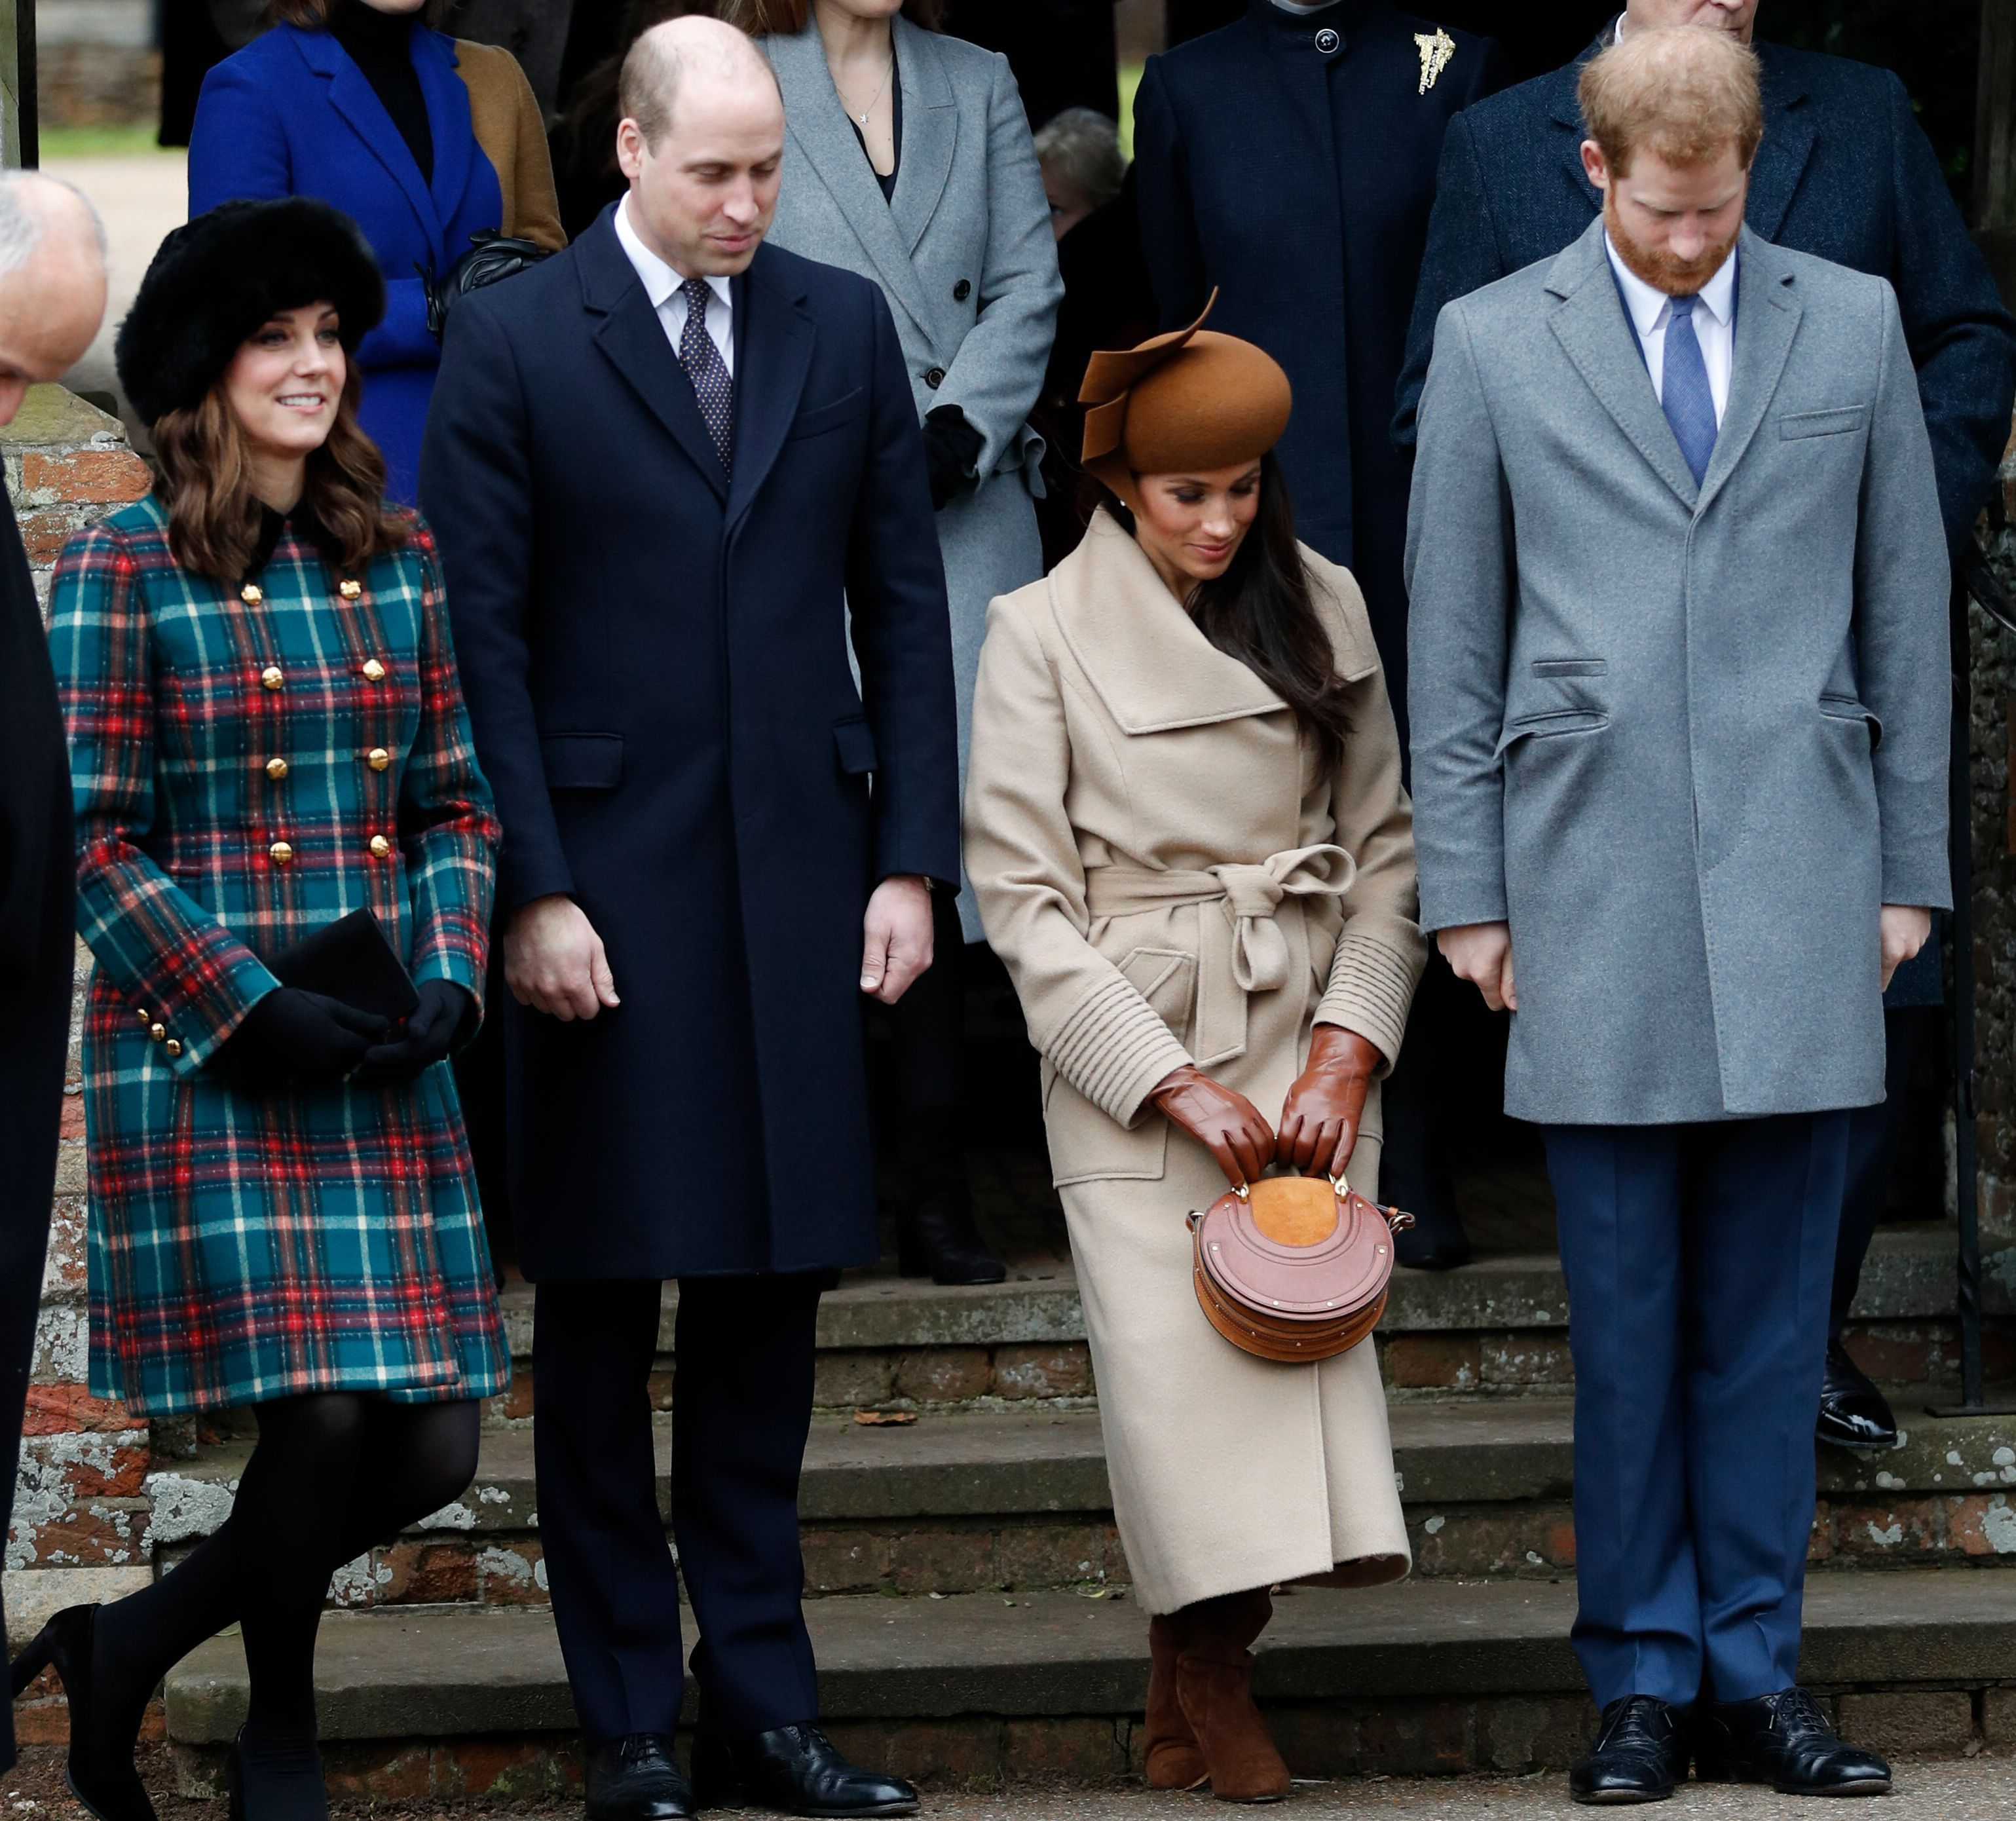 Kate Middleton and Meghan Markle curtsy to the queen